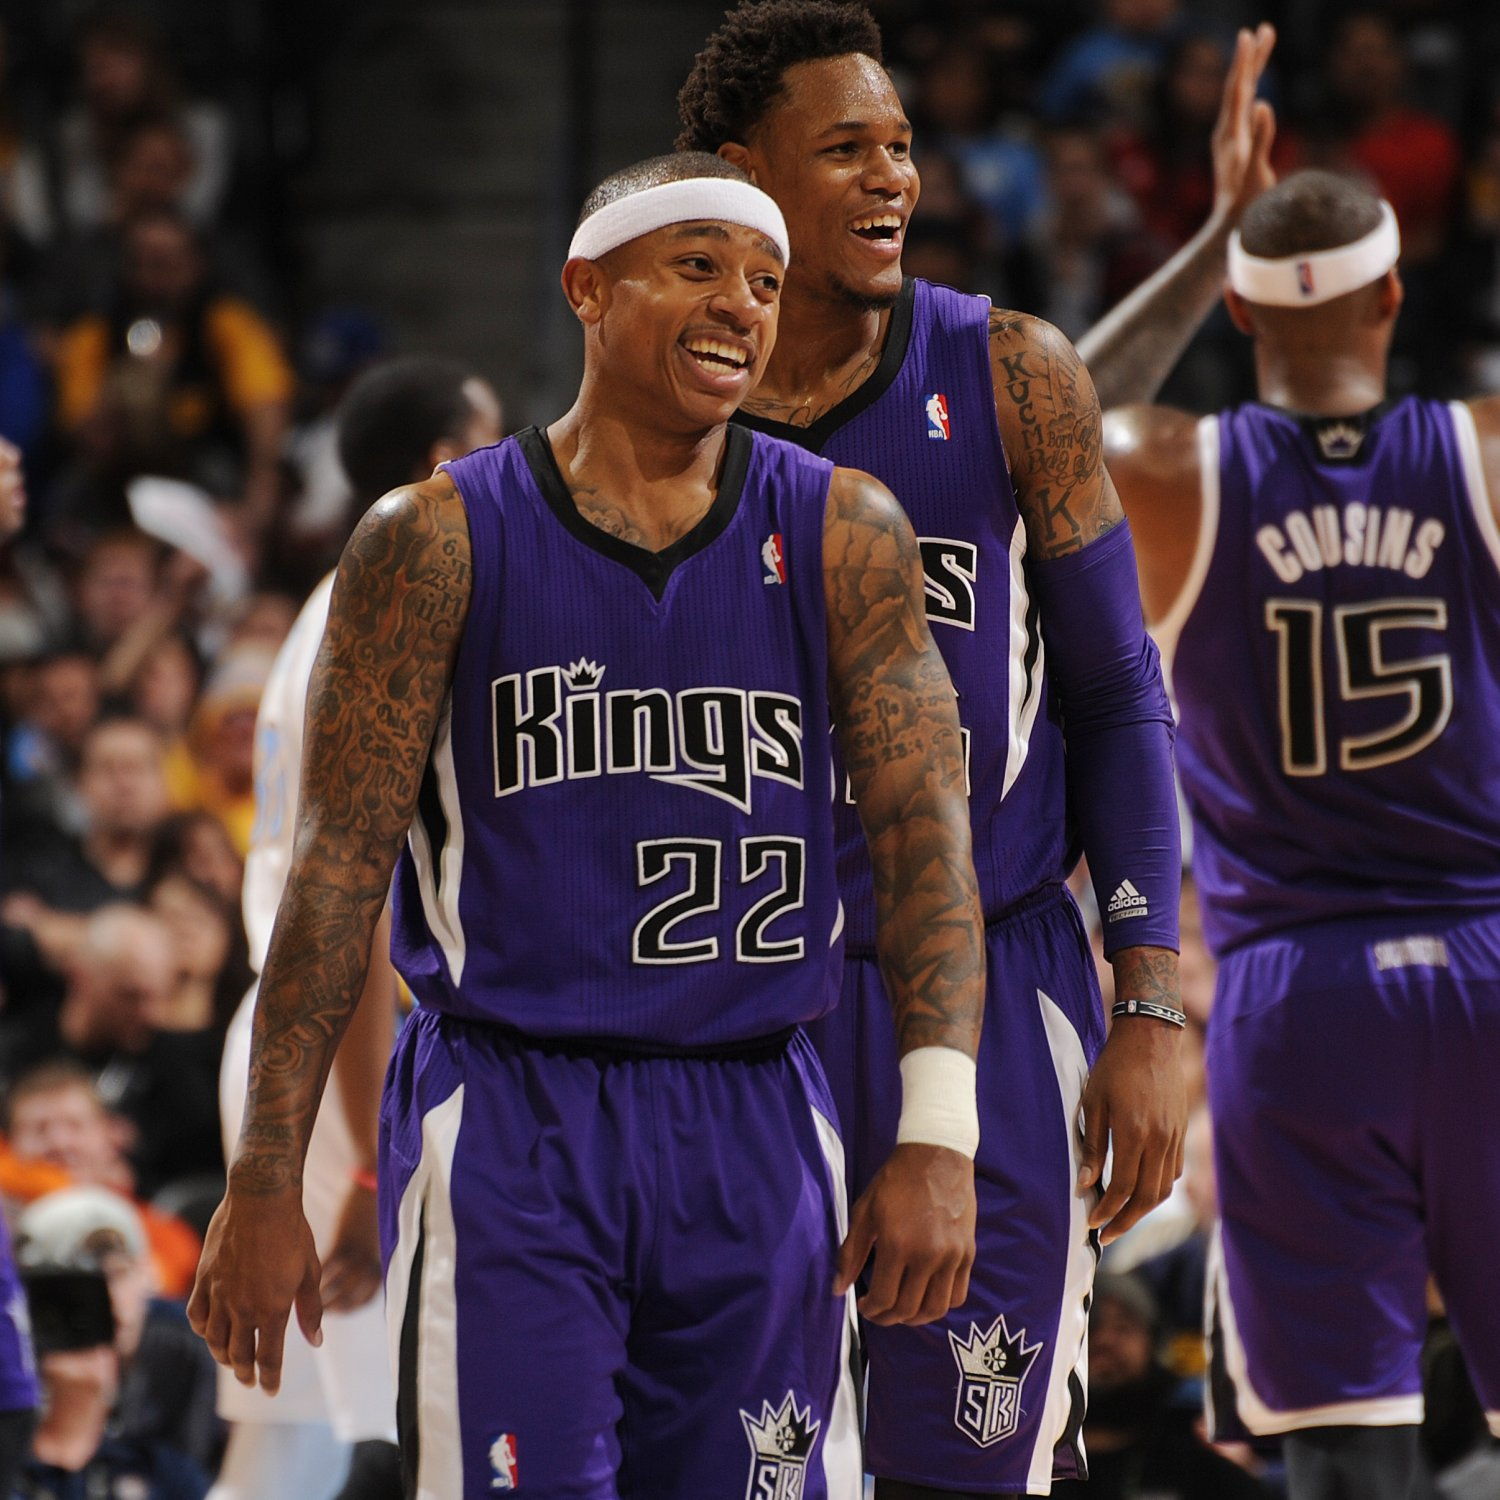 Sacramento Kings Vs. Denver Nuggets 2/23/14: Video